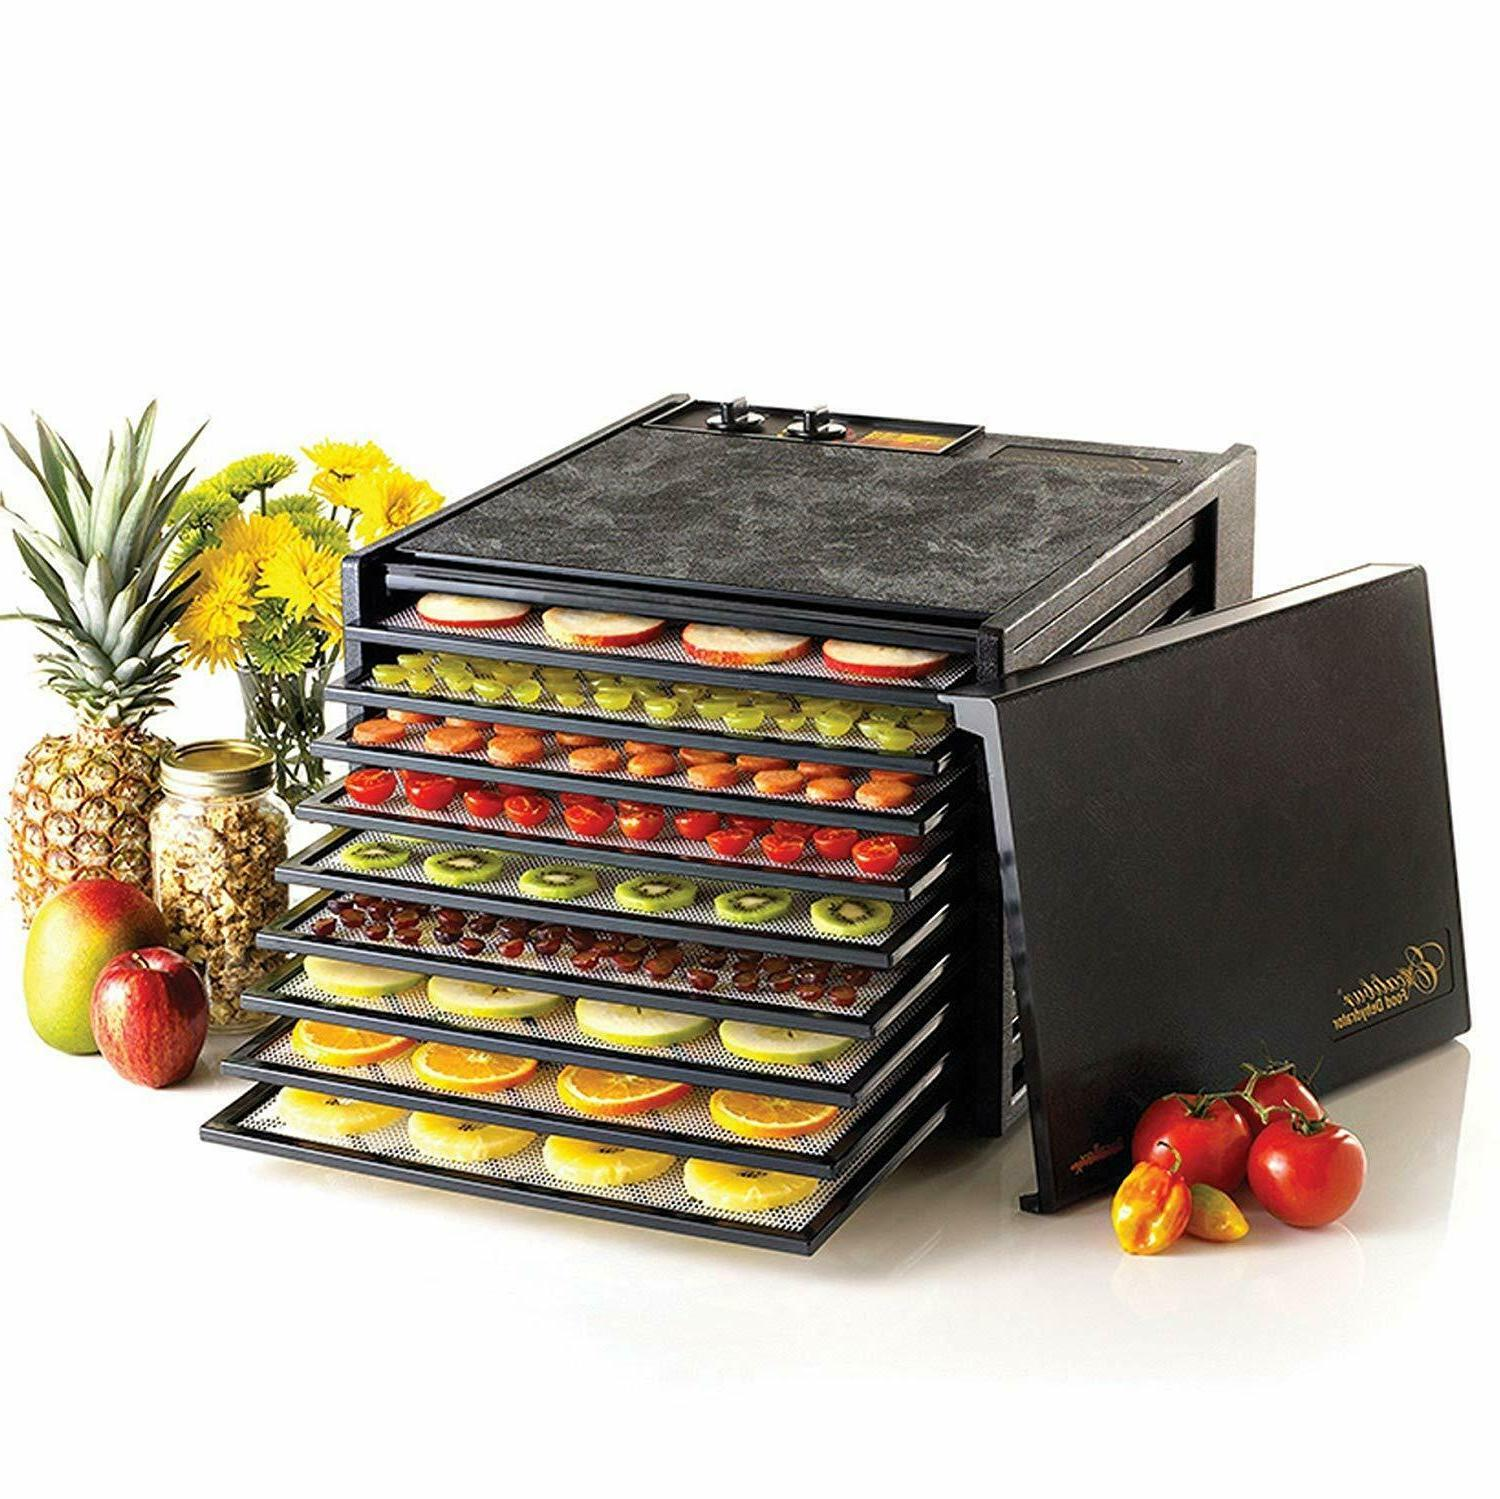 new 3926tb 9 tray electric food dehydrator